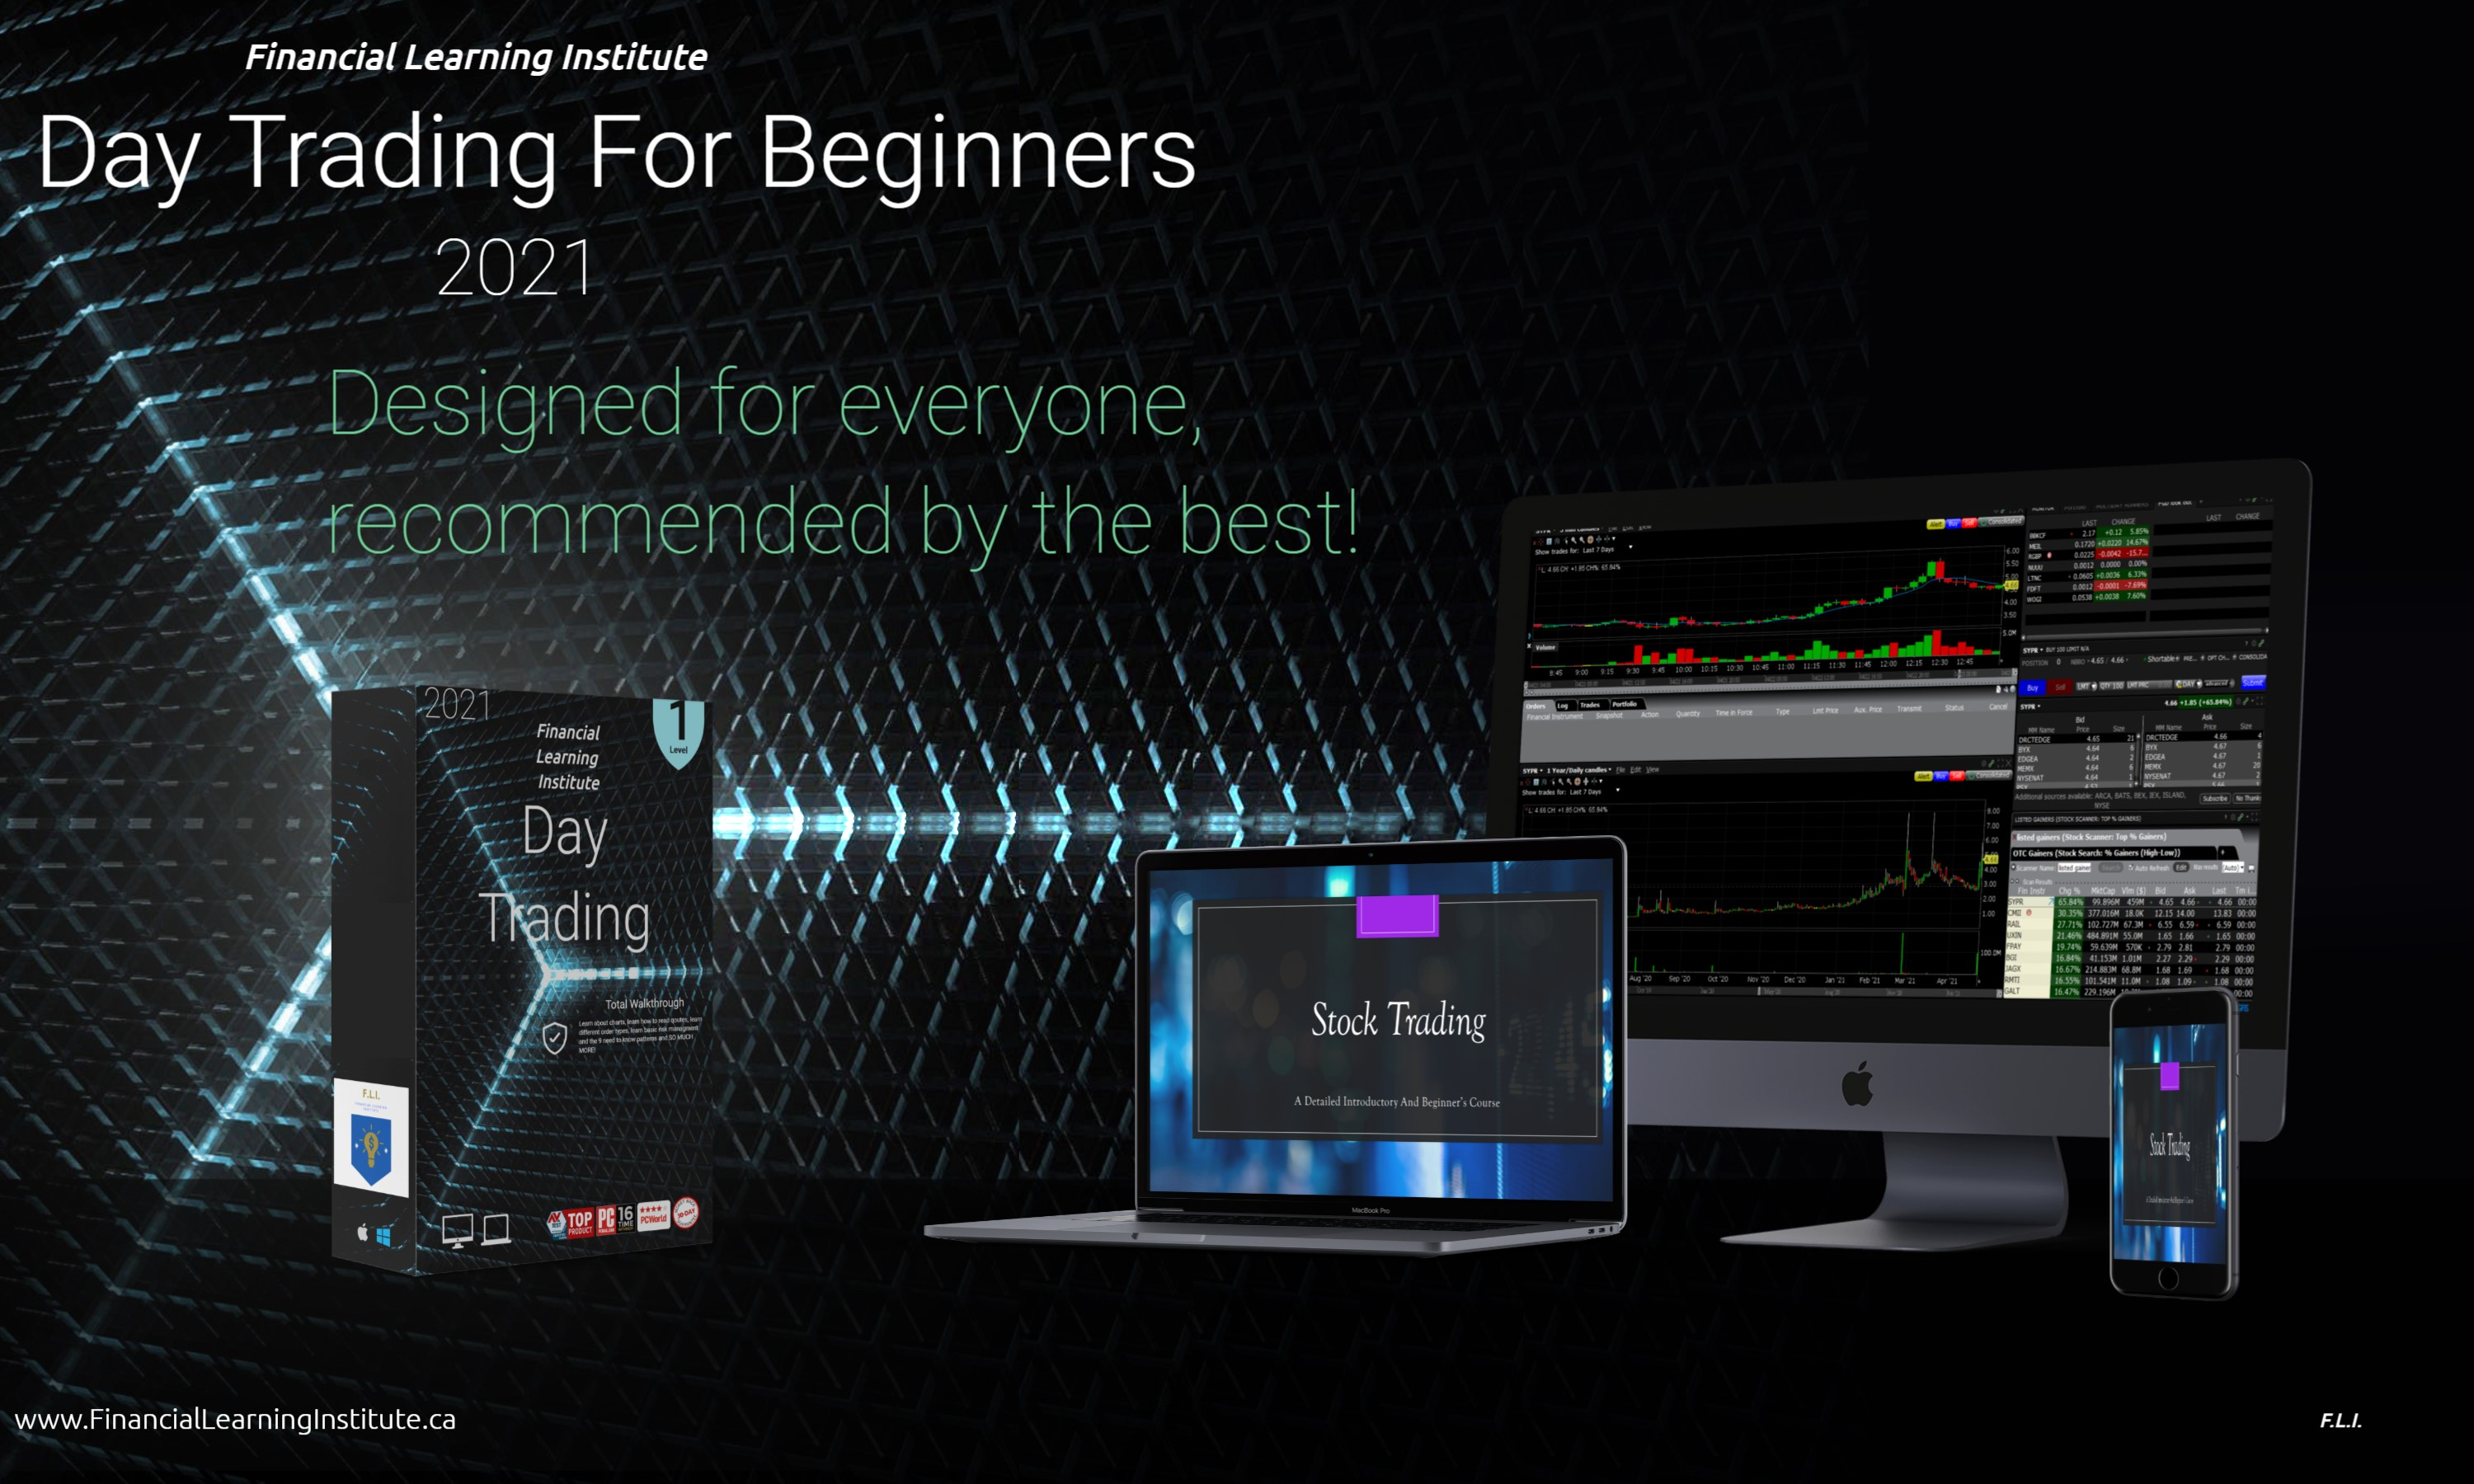 A simplified  mobile and pc friendly way to learn how to trade stocks.